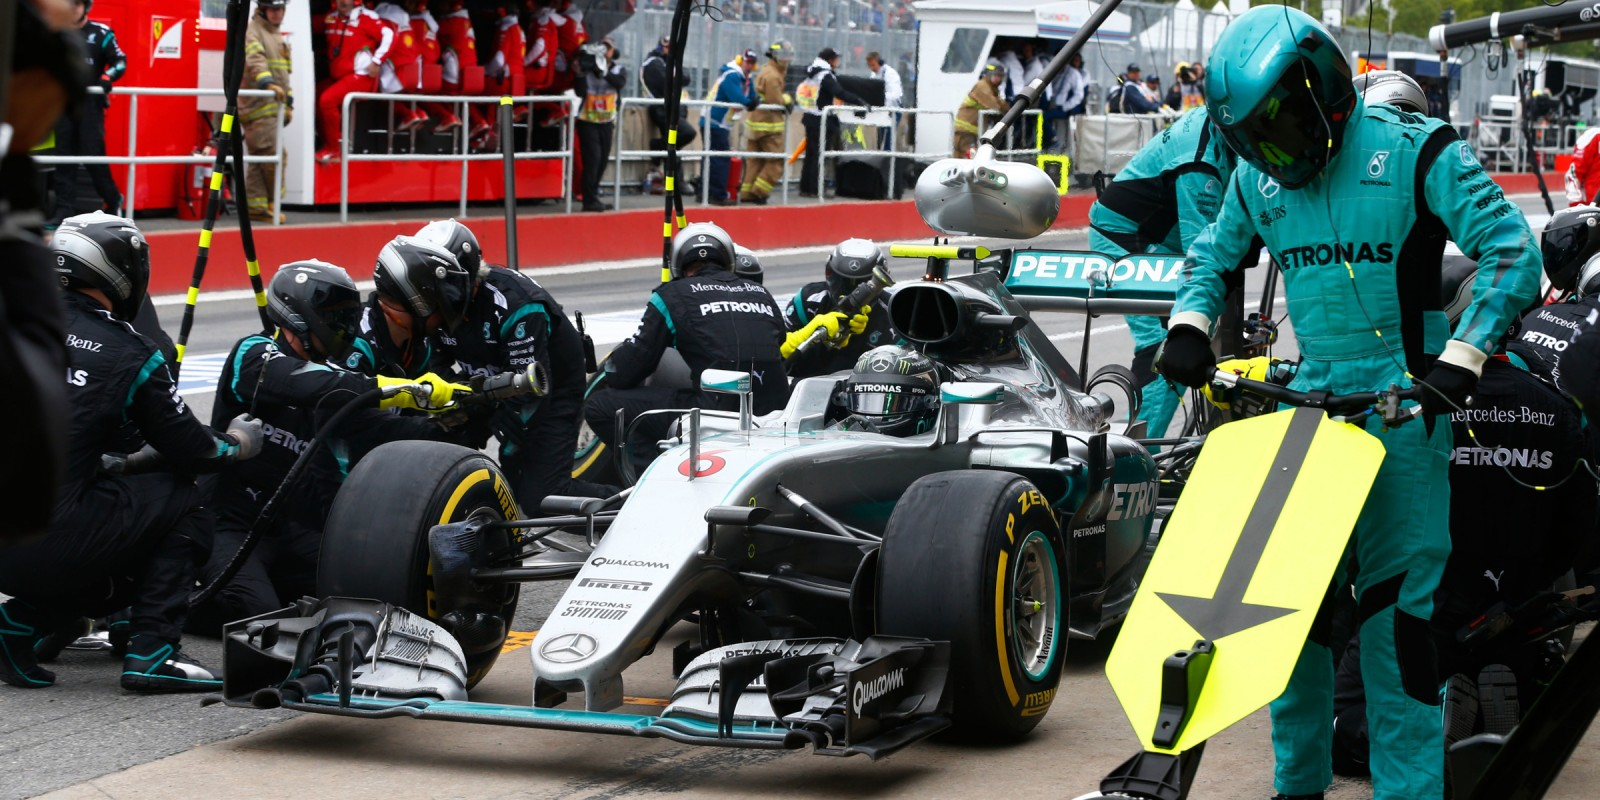 Race images from the 2016 Canadian Formula One Grand Prix